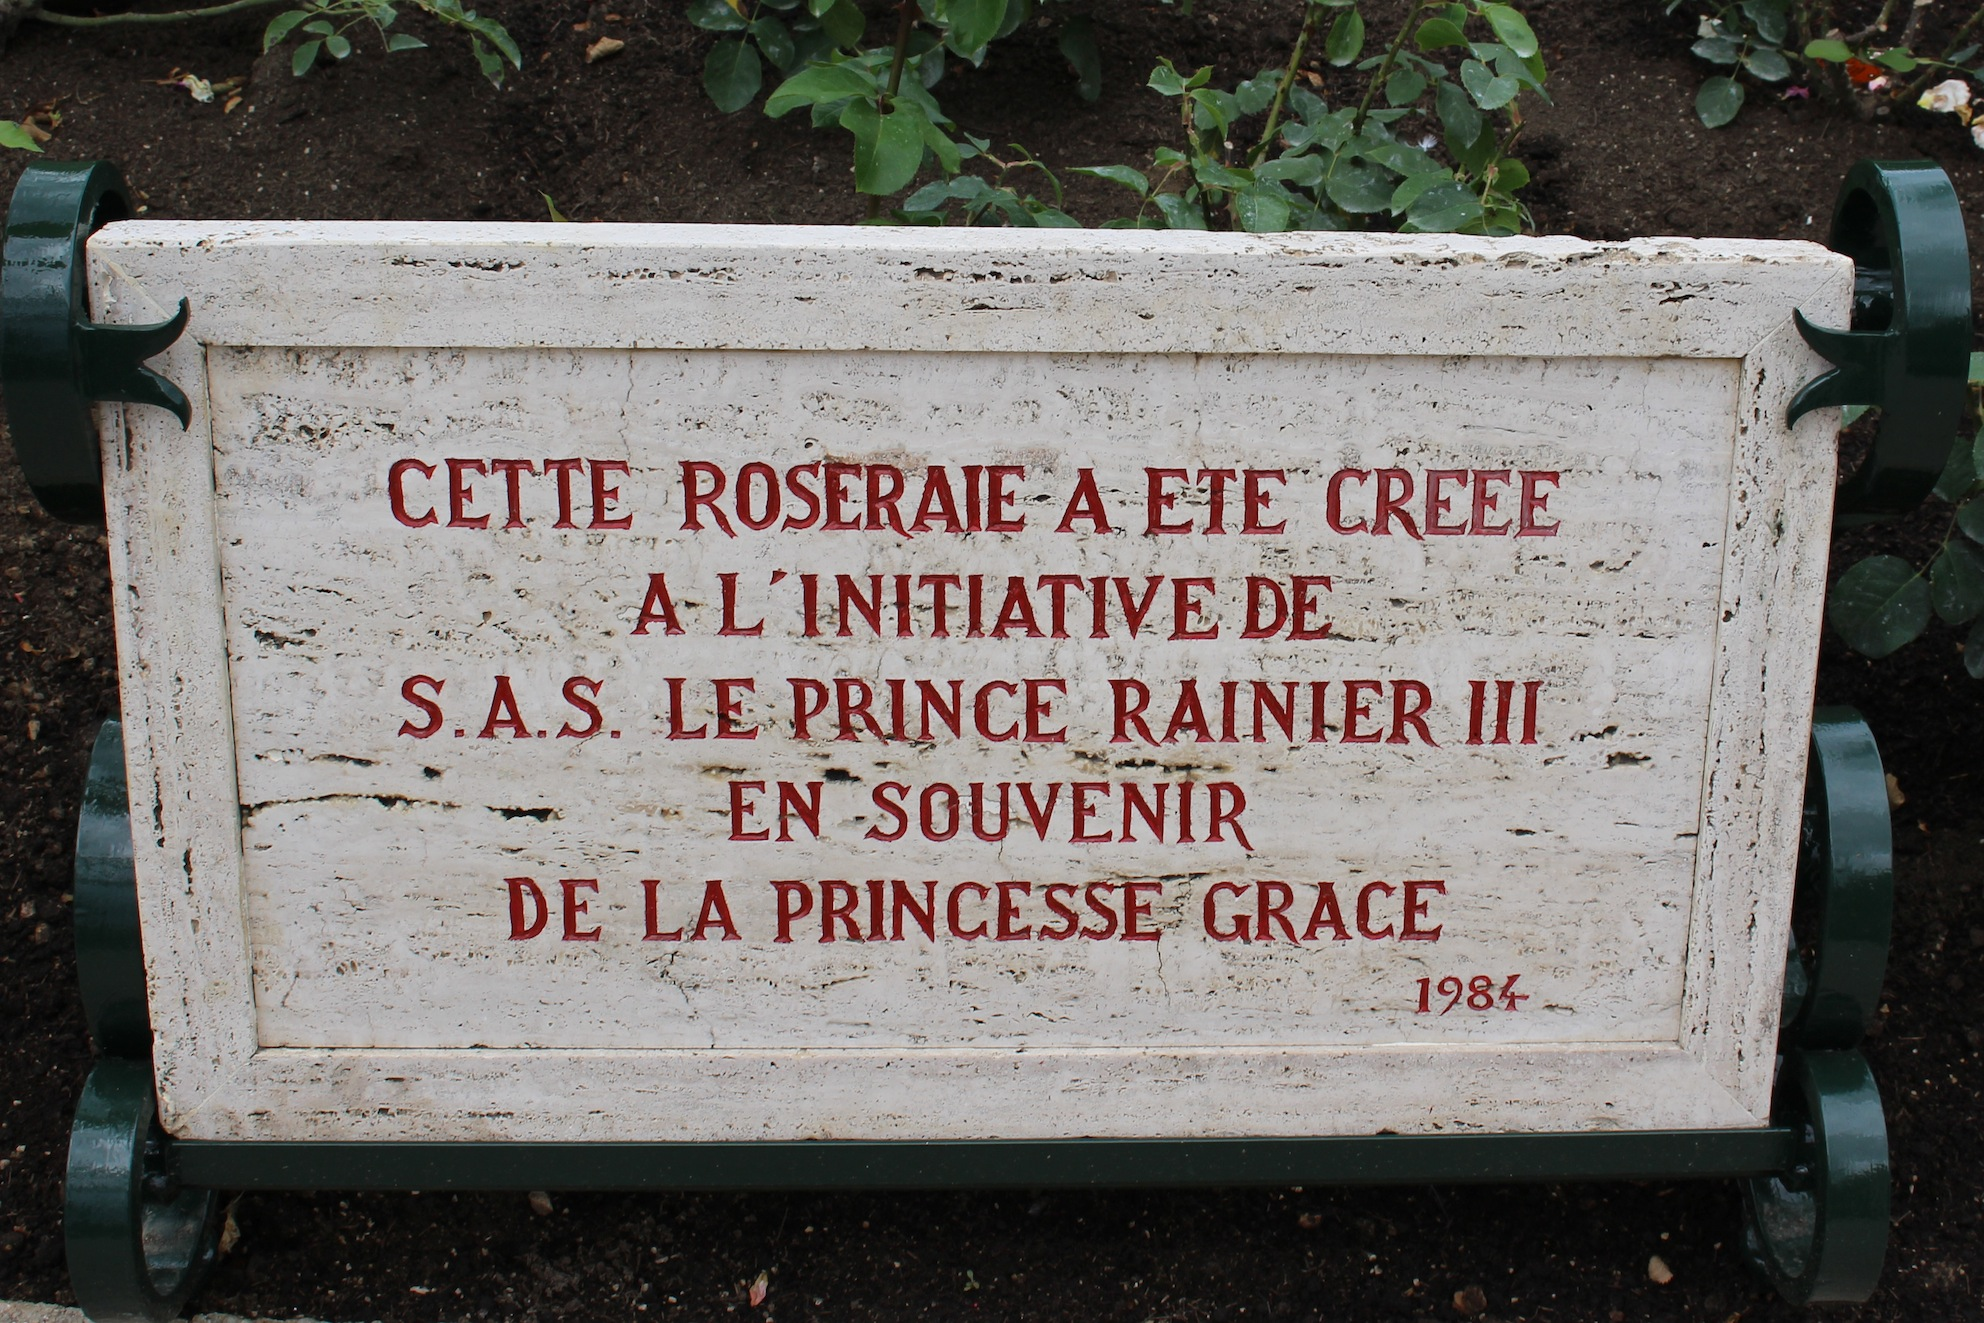 Rose Garden Creations: Plaque Of The Creation Of The Rose Garden In 1984